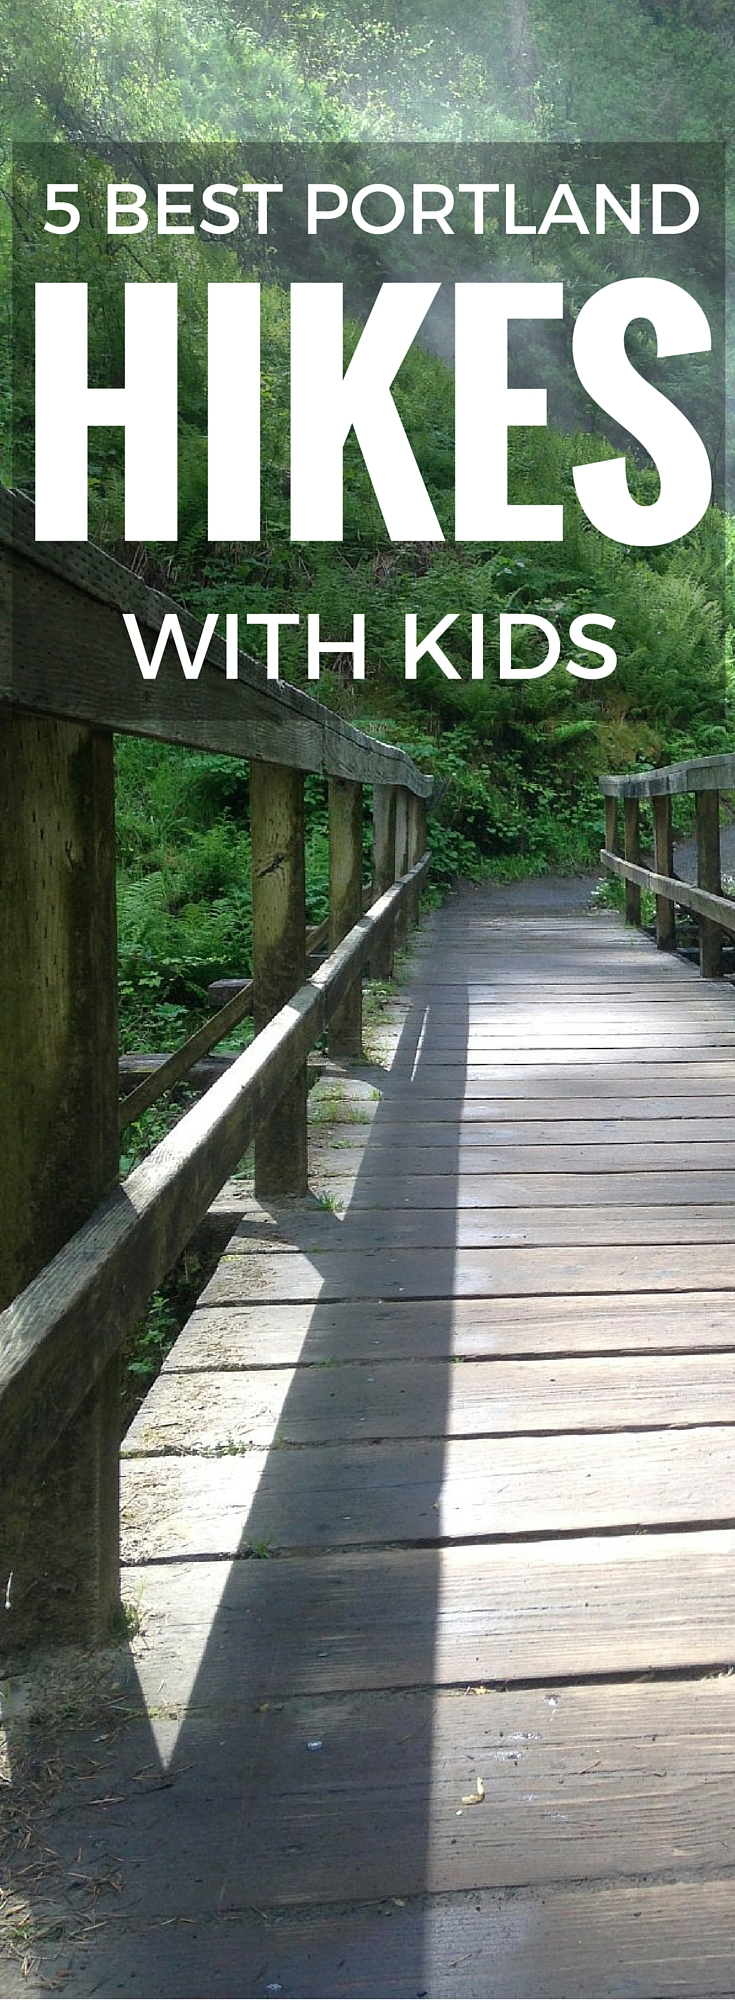 Portland-hikes-with-kids